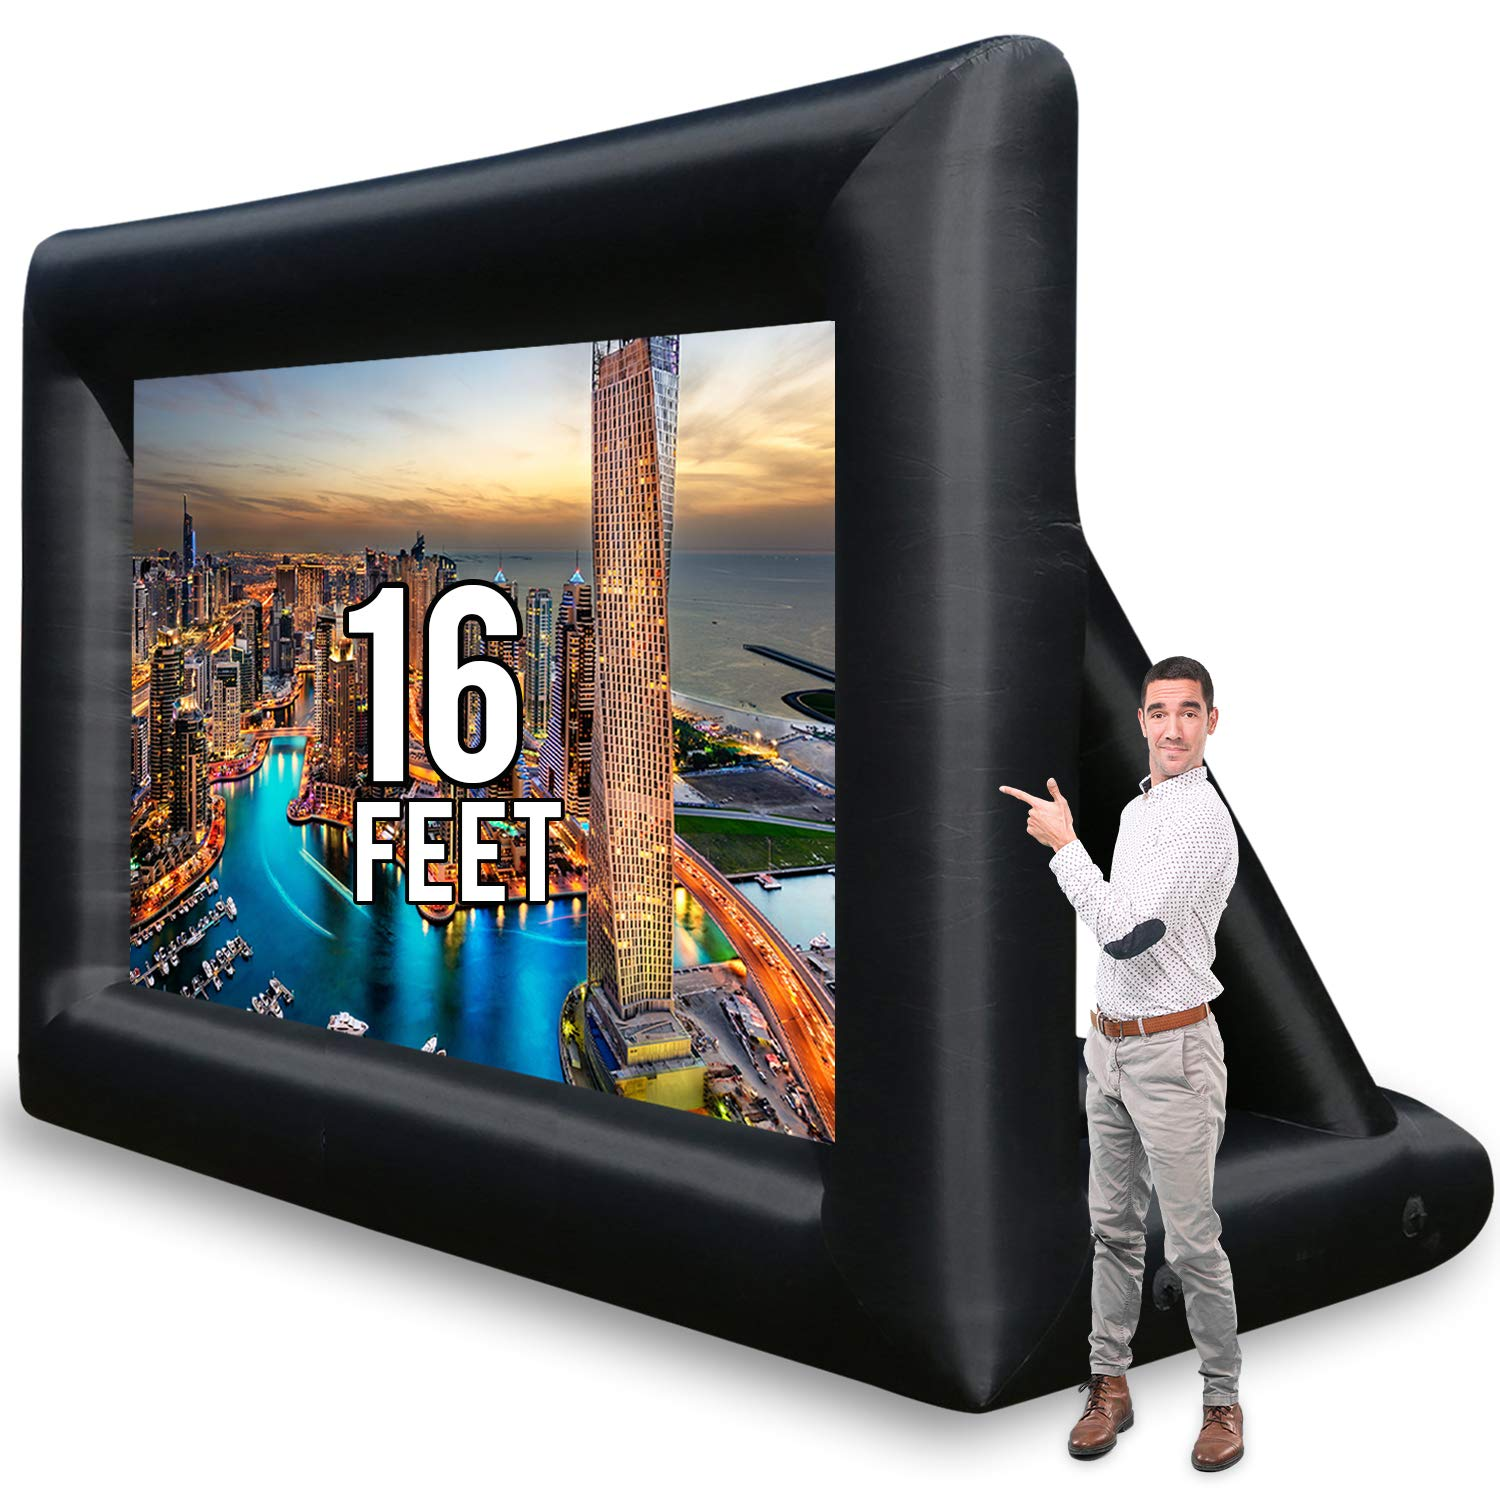 Jumbo 16 Feet Inflatable Outdoor and Indoor Theater Projector Screen - Includes Inflation Fan, Tie-Downs and Storage Bag by KHOMO GEAR